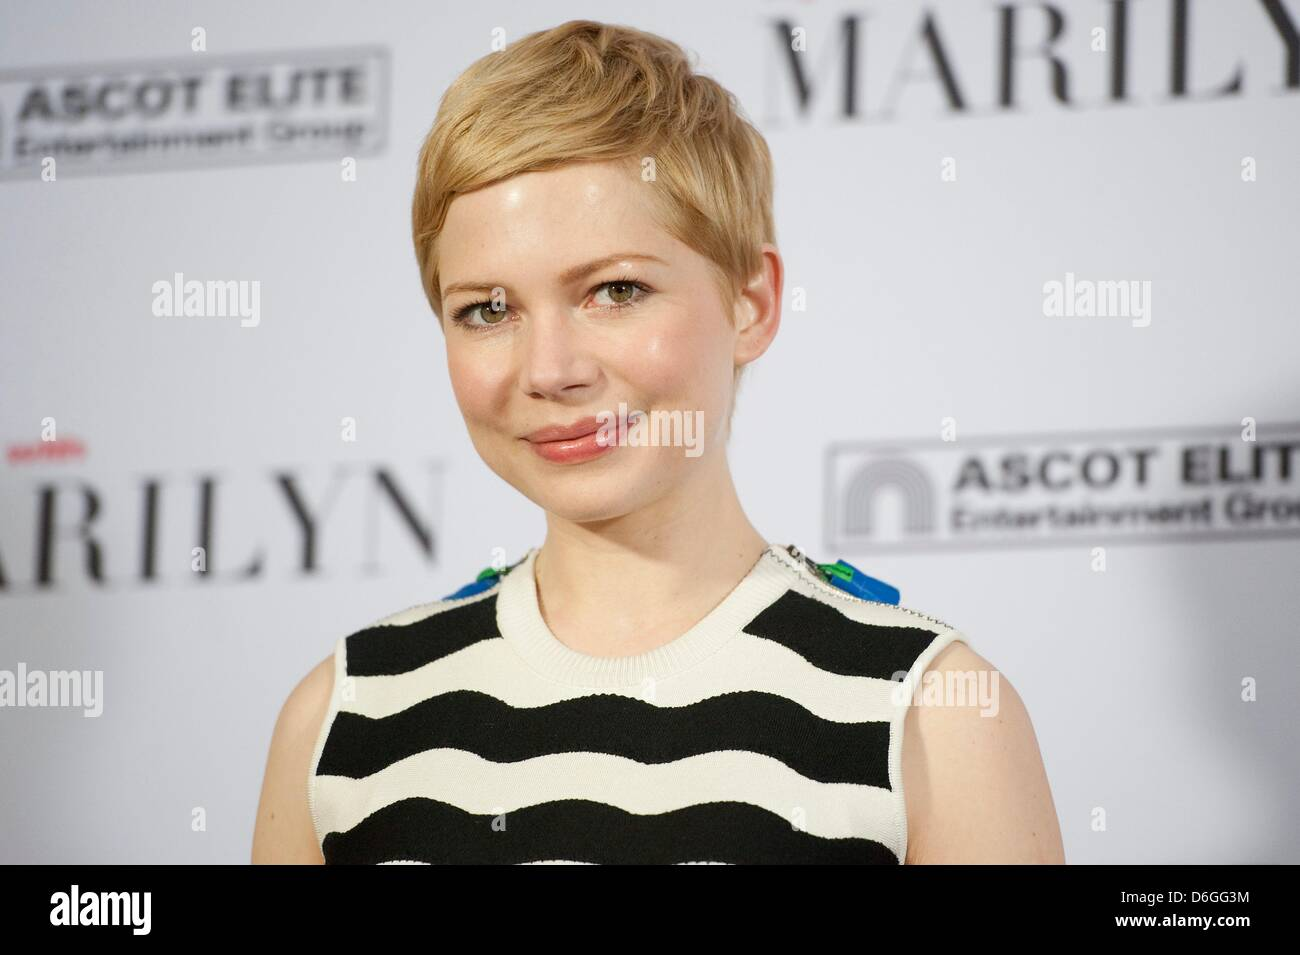 a2cc0811edd US actress Michelle Williams presents her new movie  My Week With Marilyn   at the Hotel Adlon in Berlin